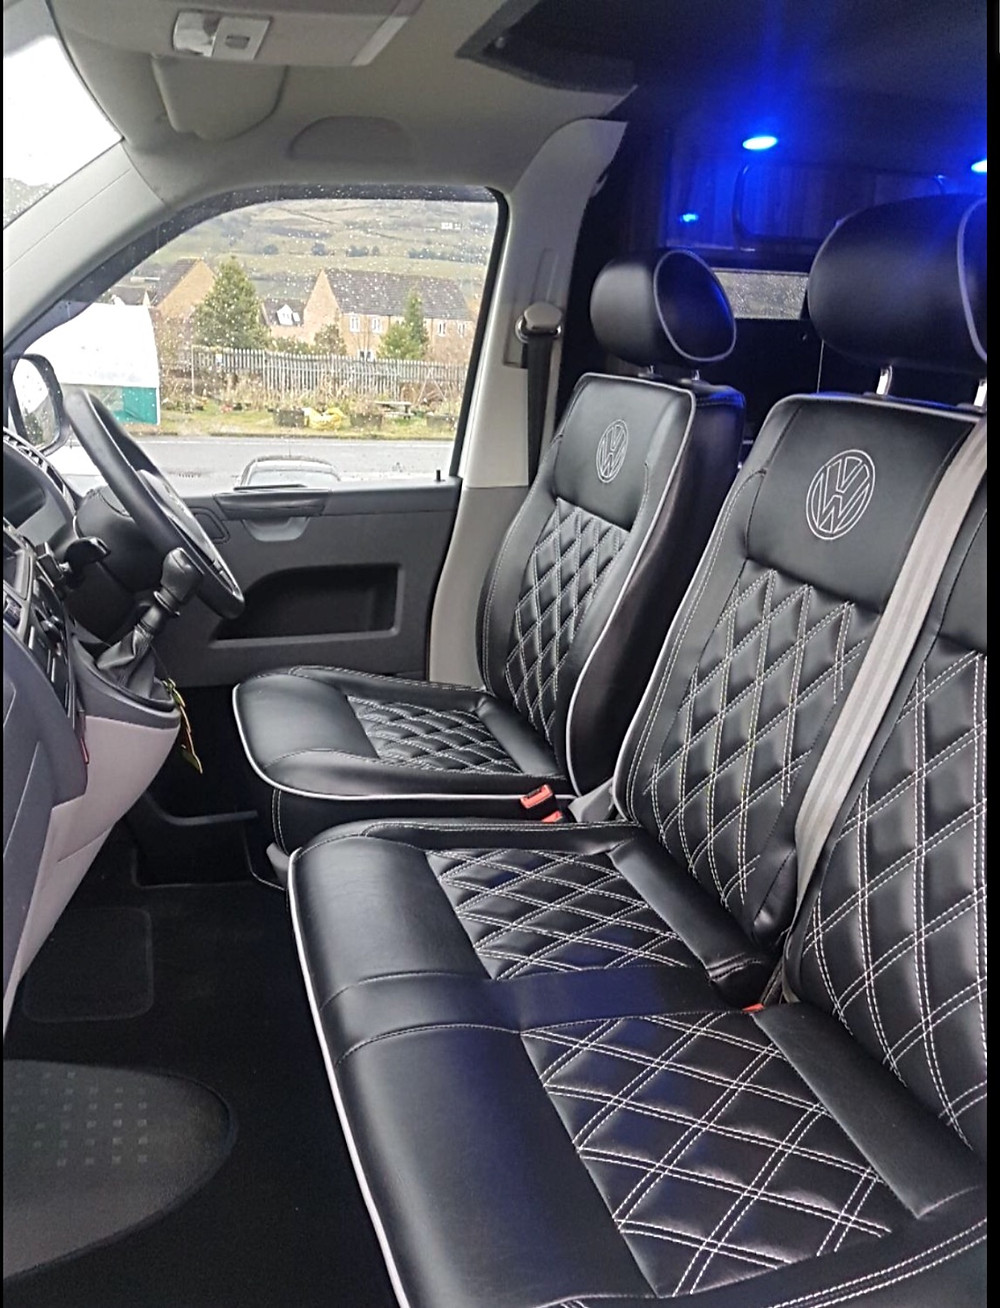 vw transporter campervan seats